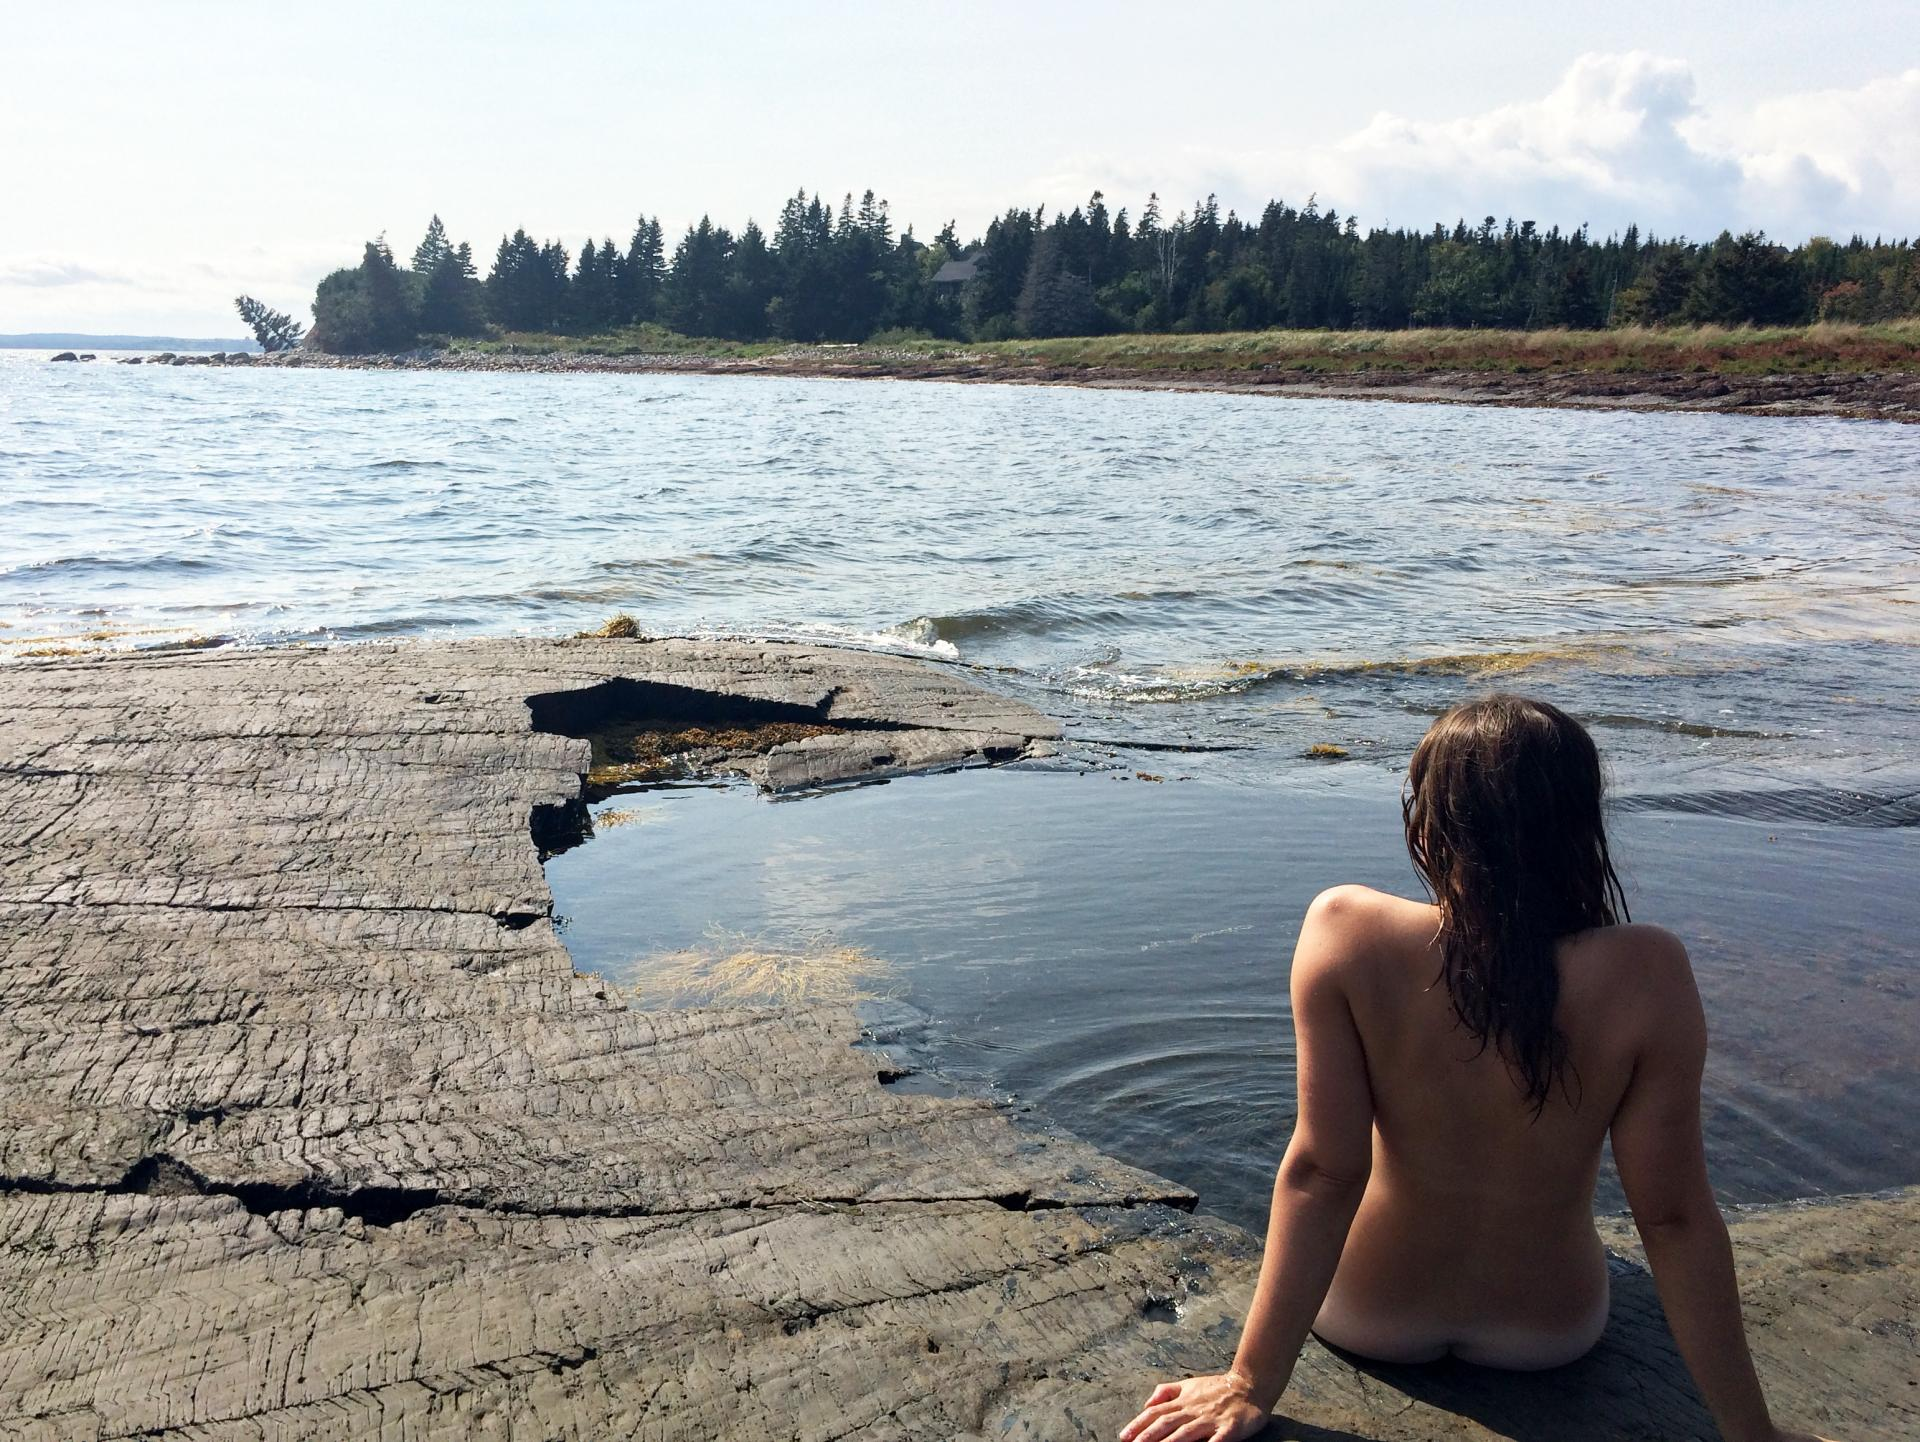 Naked skinny dipping couples